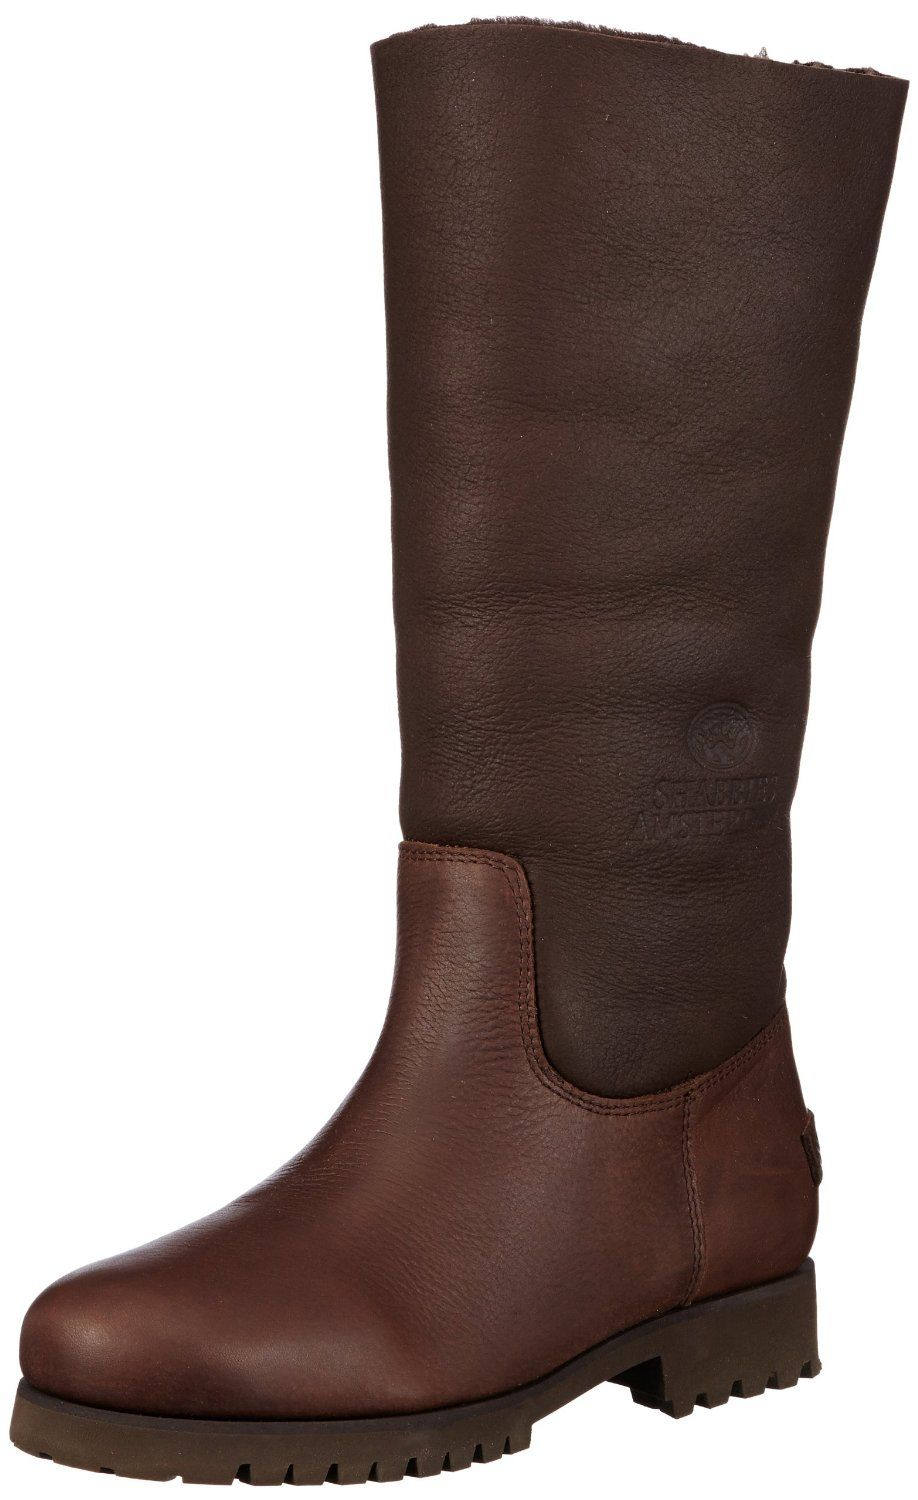 Discount 2018 New Sast Shabbies Amsterdam BOOT MID 3 6 CM women's High Boots in Lowest Price mVUKON